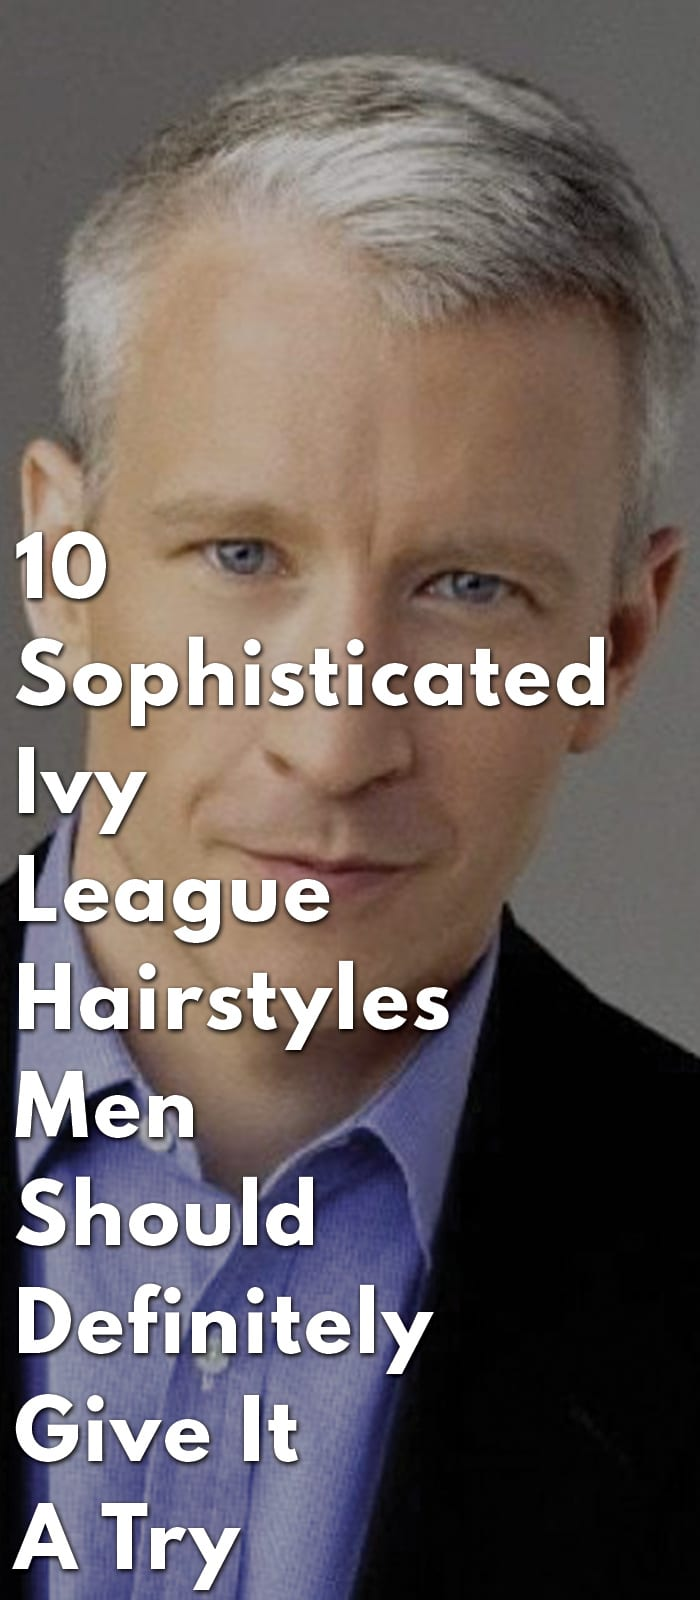 10-Sophisticated-Ivy-League-Hairstyles-Men-Should-Definitely-Give-It-A-Try